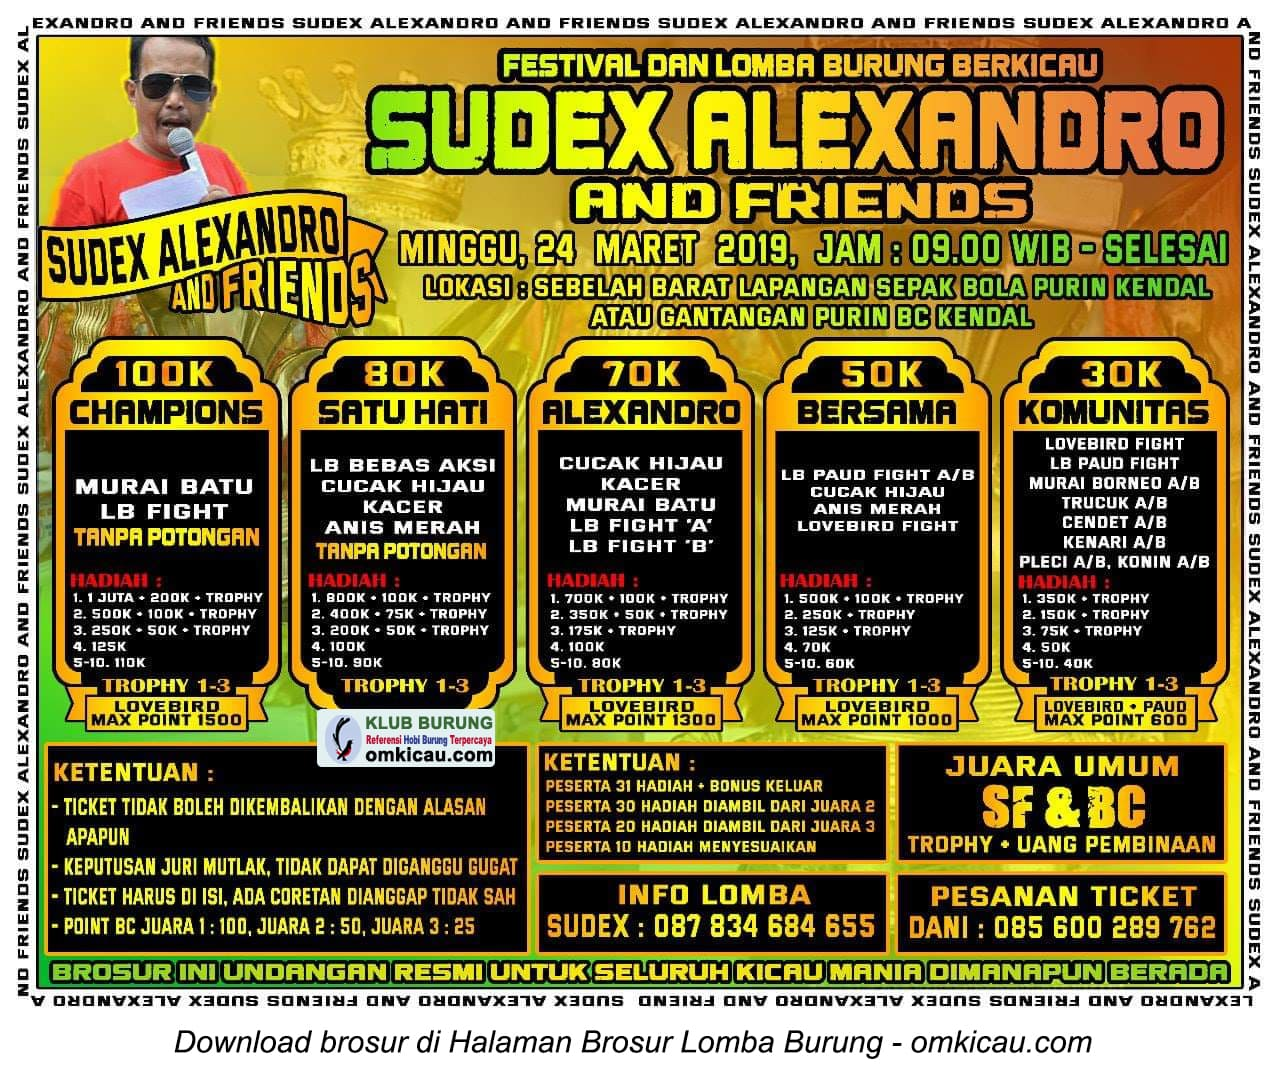 Sudex Alexandro and Friends